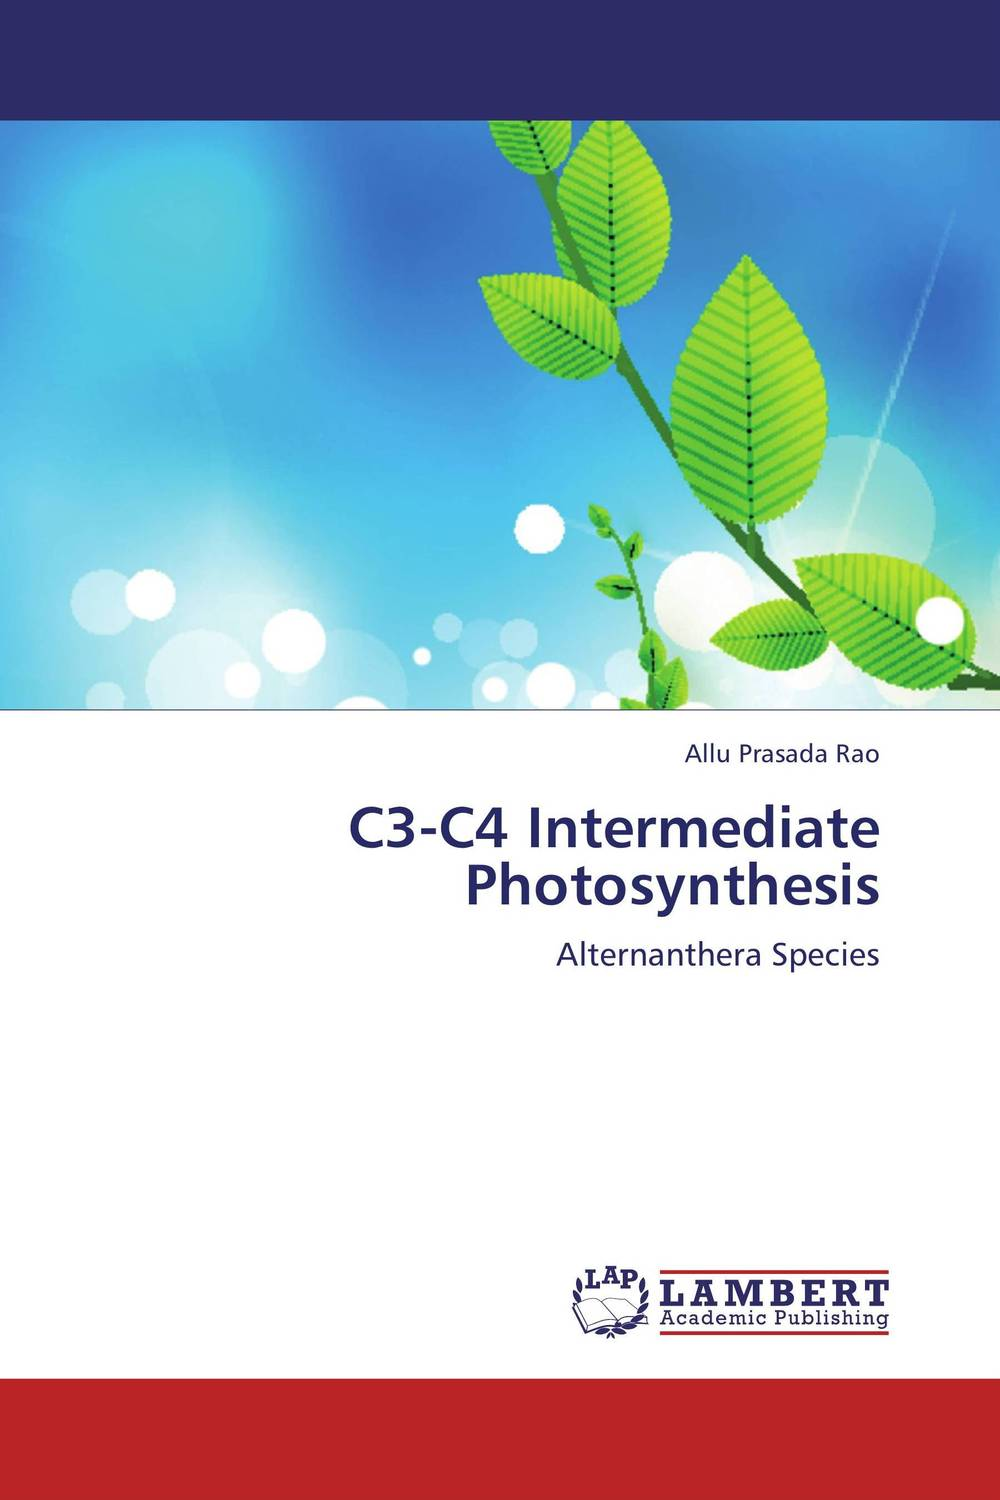 C3-C4 Intermediate Photosynthesis merries трусики подгузники xl12 22кг n38